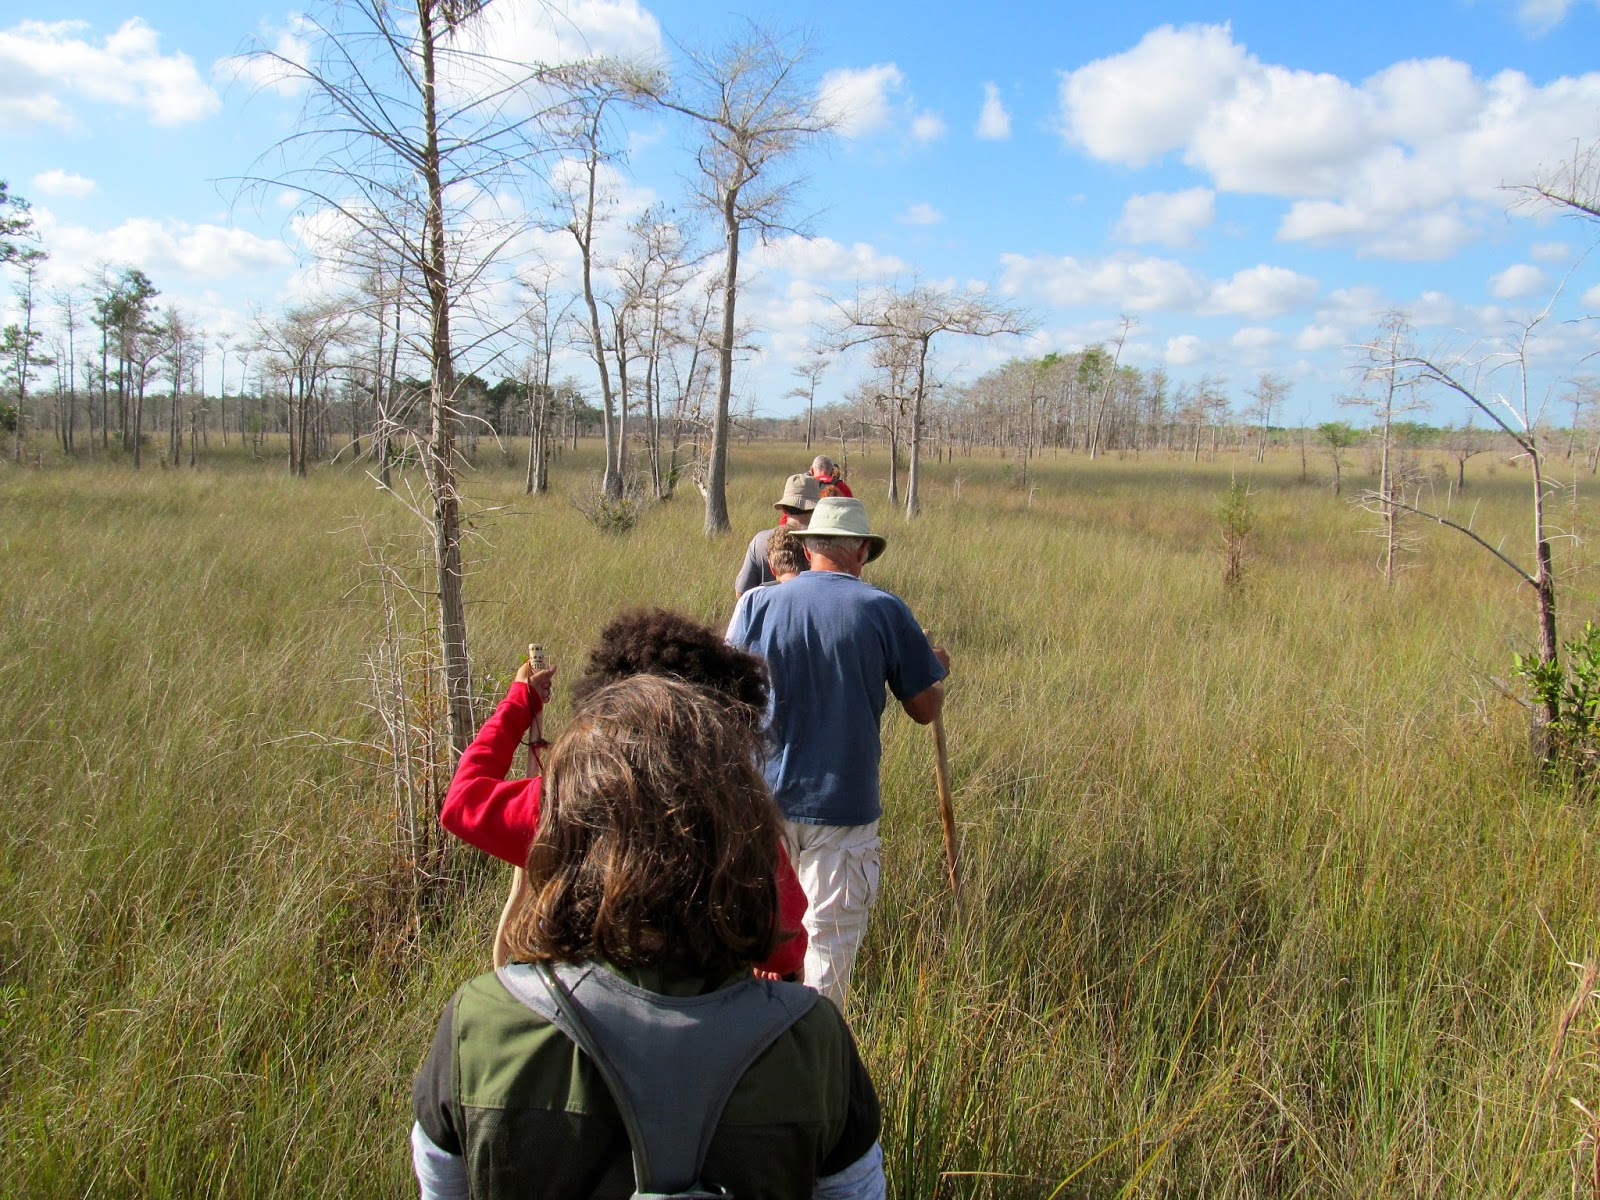 Cypress Sawyer Historic HIke - Big Cypress Swamp - Florida Everglades - Hiking